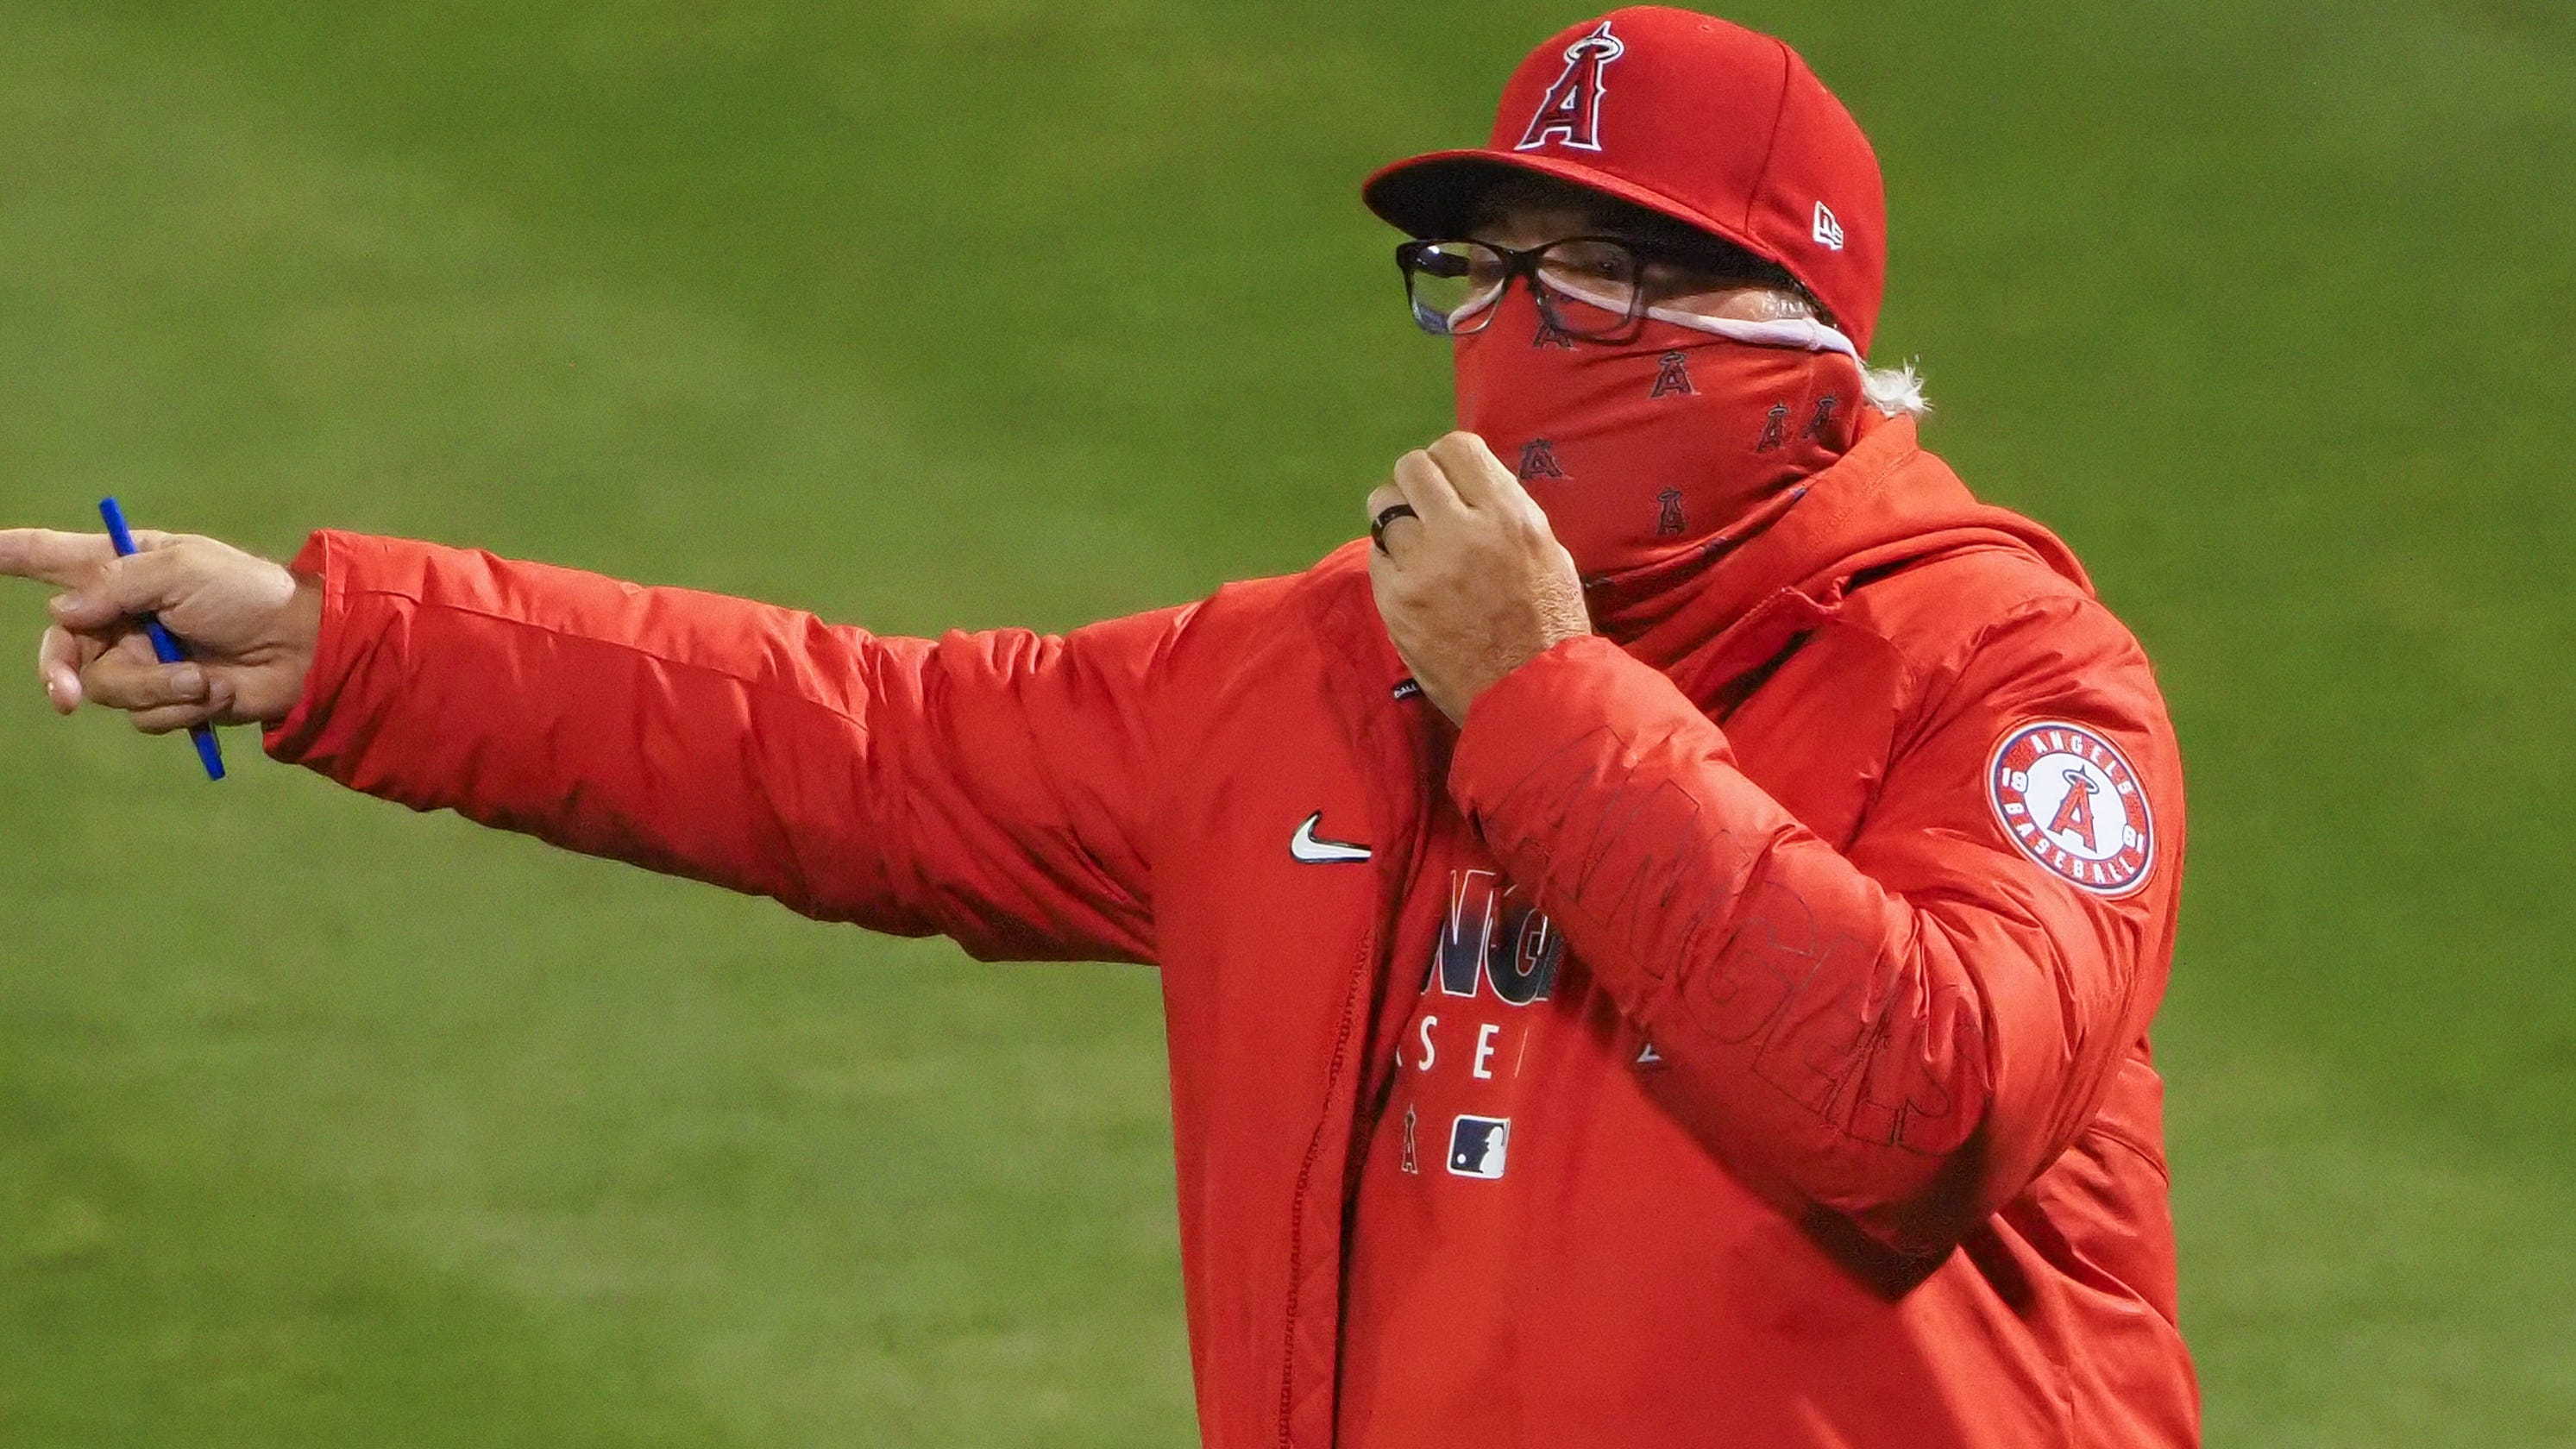 Joe Maddon on throwing at Astros: Angels won't, but 'I could get it a little bit' for Dodgers